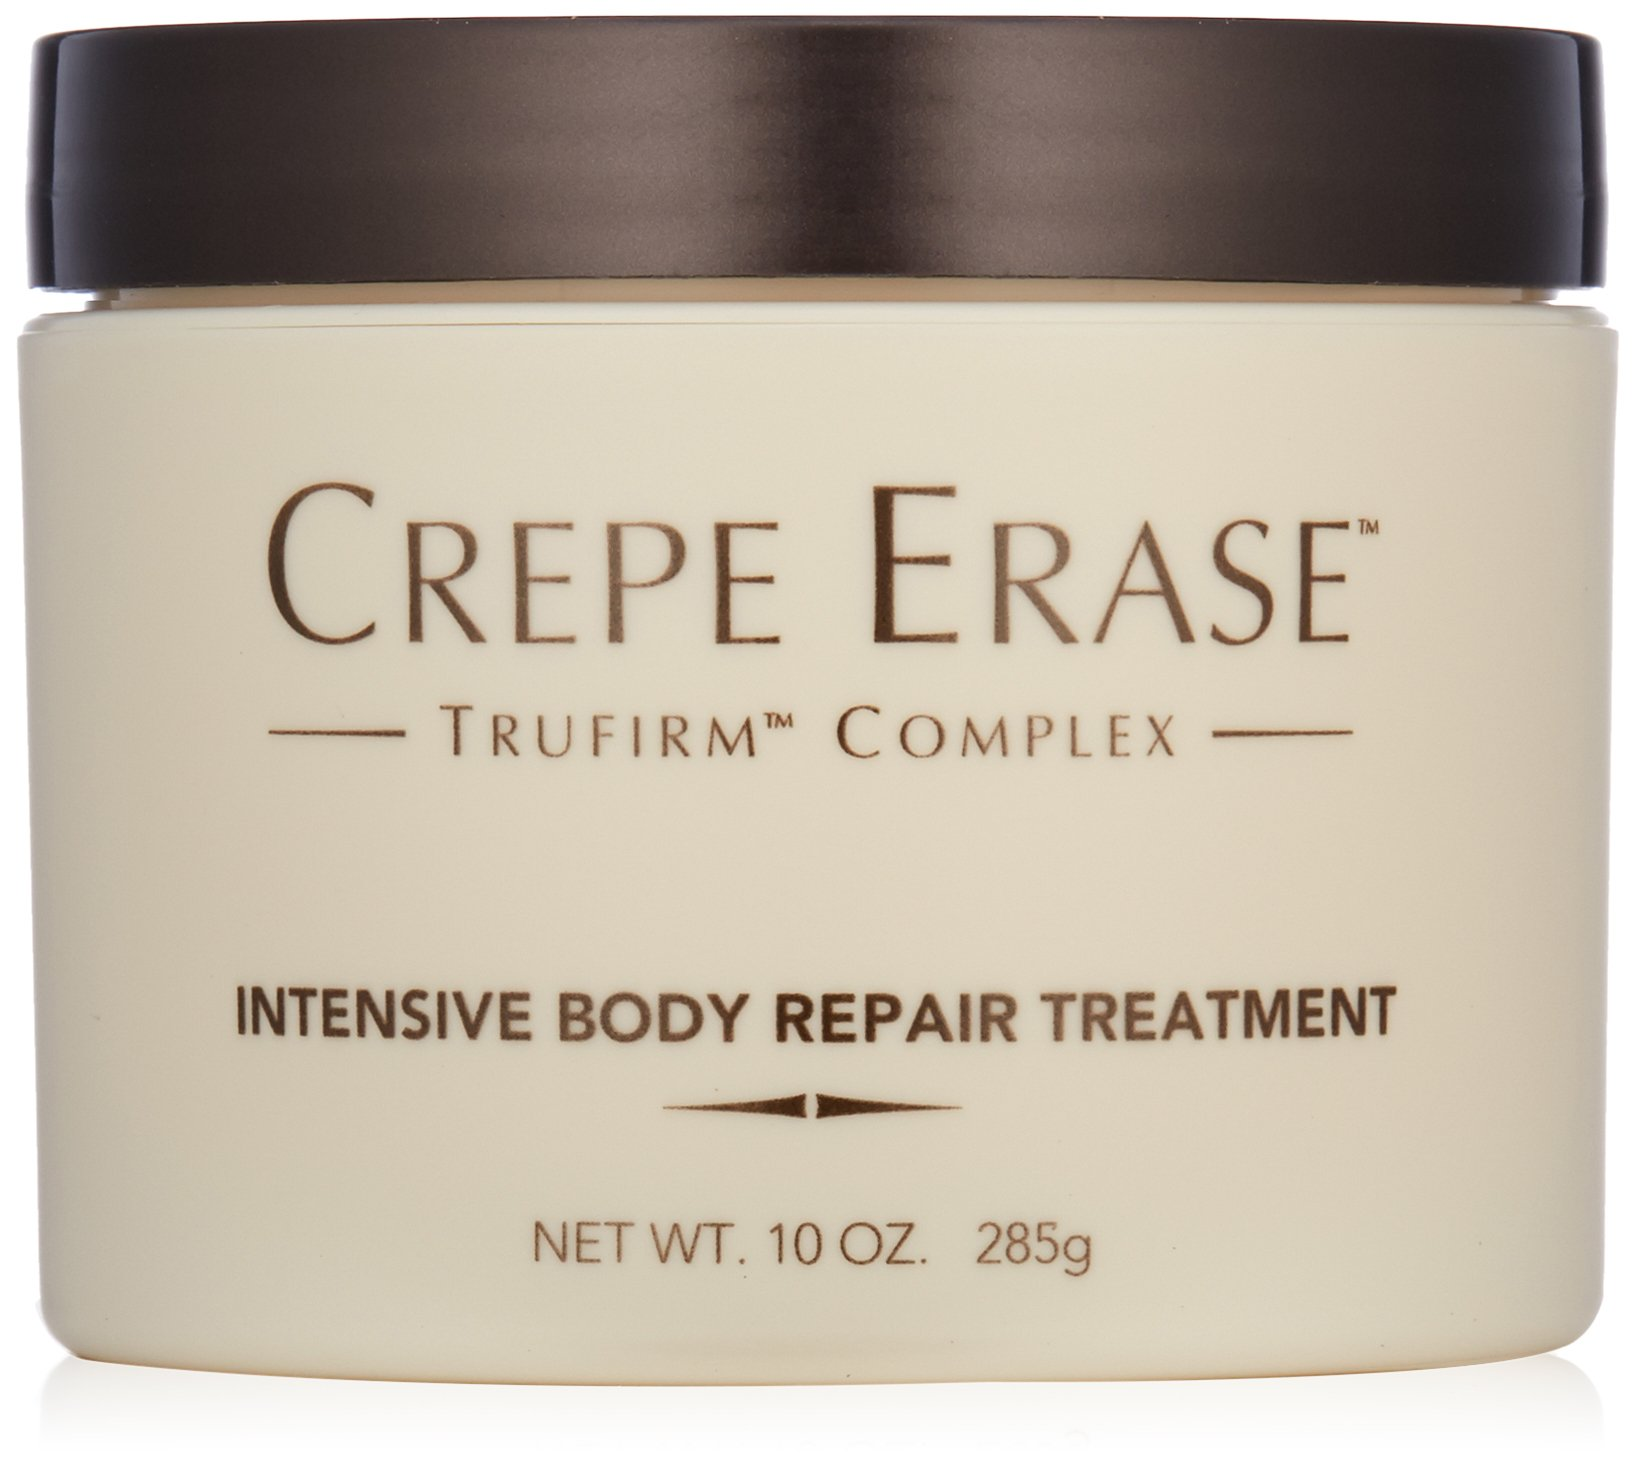 Crepe Erase – Intensive Body Repair Treatment – Smoothing Moisturizer – Shea Butter and Vitamin E for Dry Skin and TruFirm Complex – 10 Ounces – CS.0054